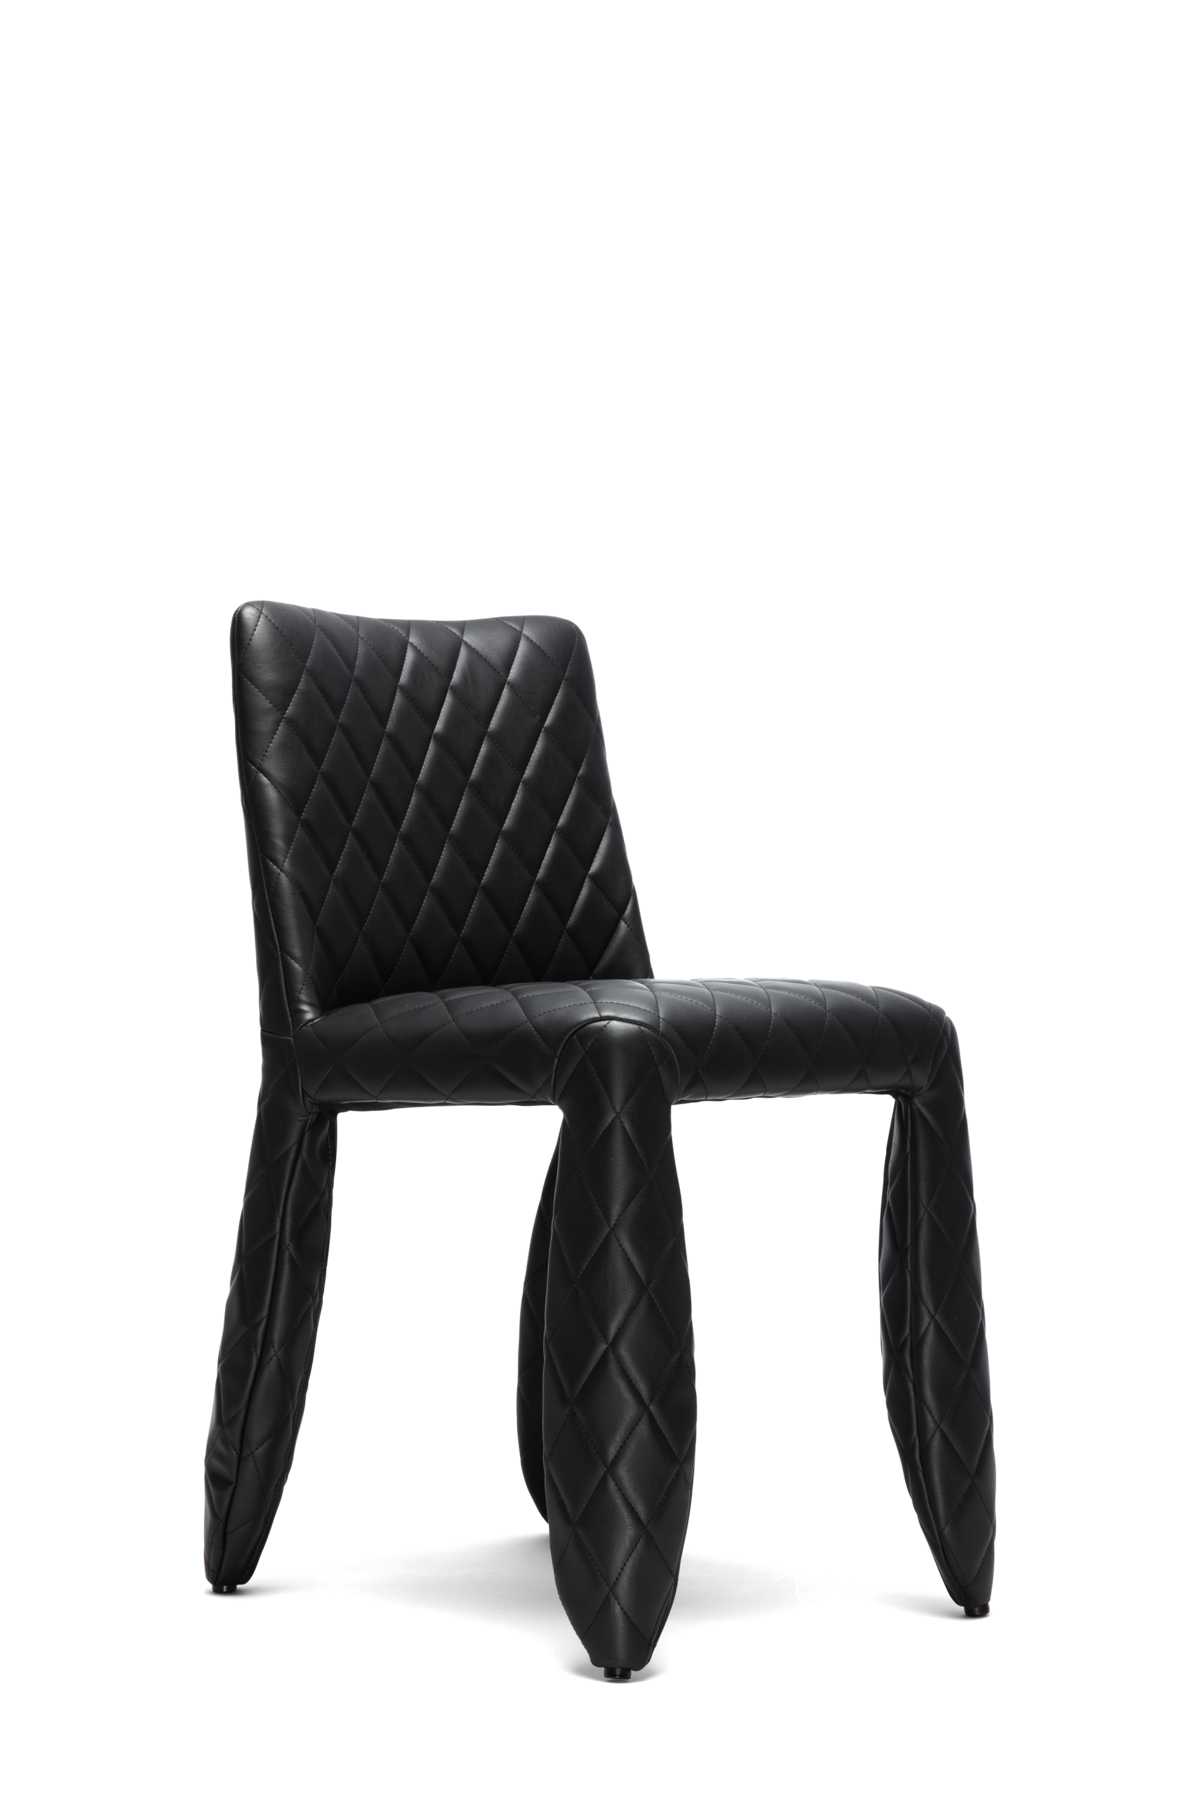 Monster Chair black front view